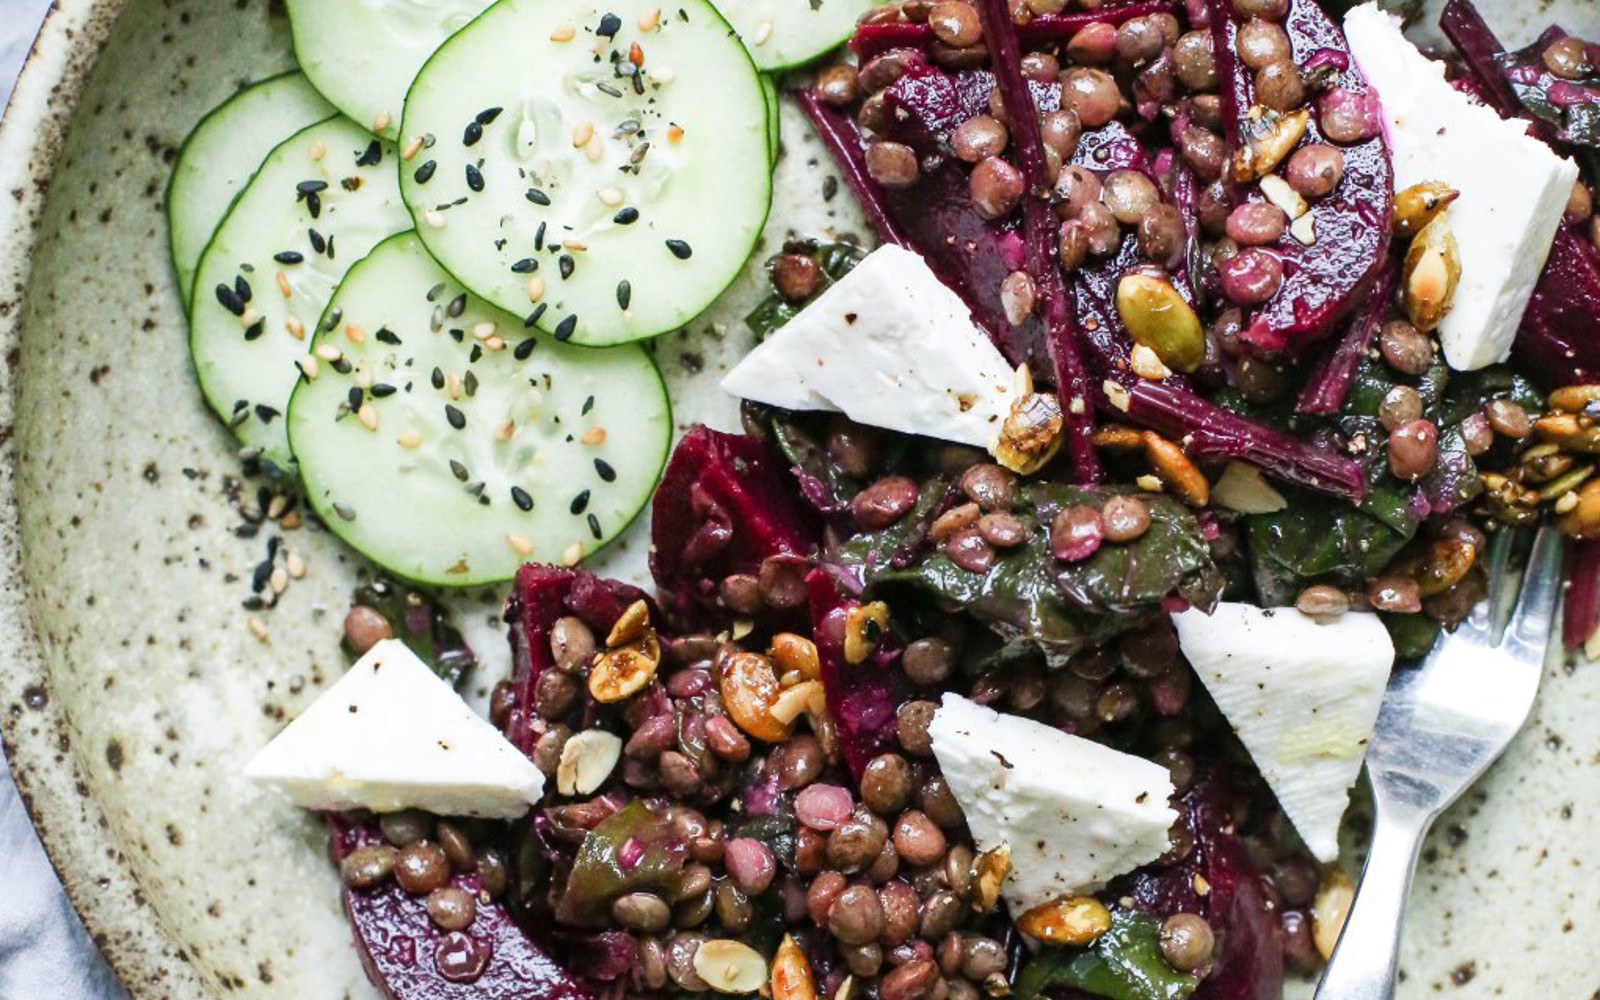 Vegan Beet and Lentil Salad With Beet Greens Topped With Vegan Cheese